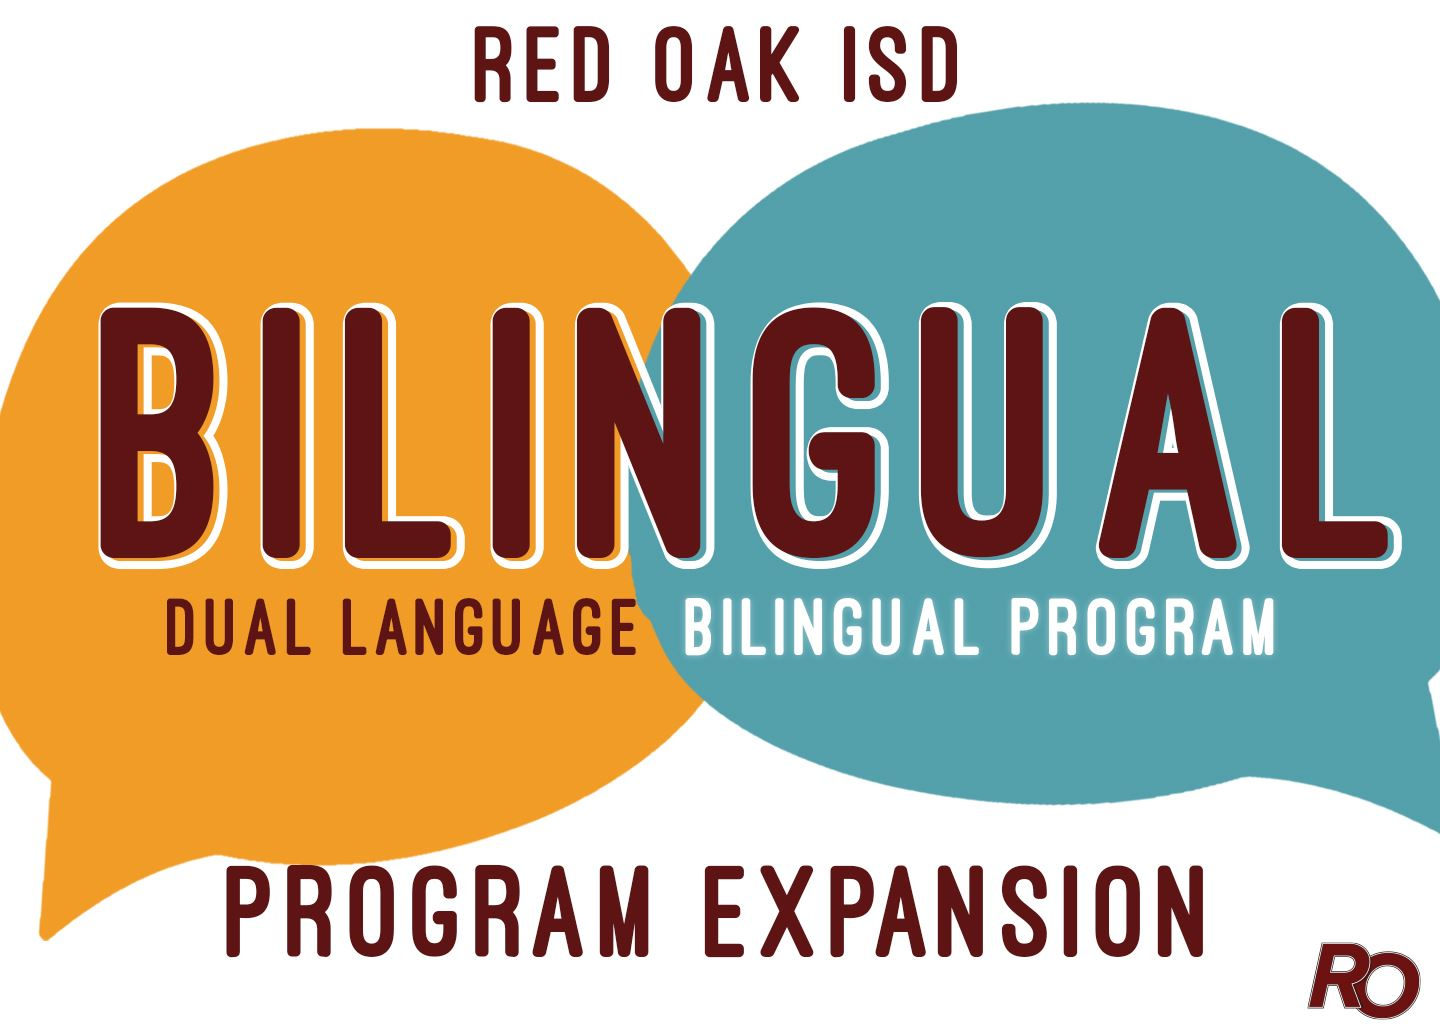 ROISD Dual Language Bilingual program expansion to Schupmann Elementary in the fall of 2020-21